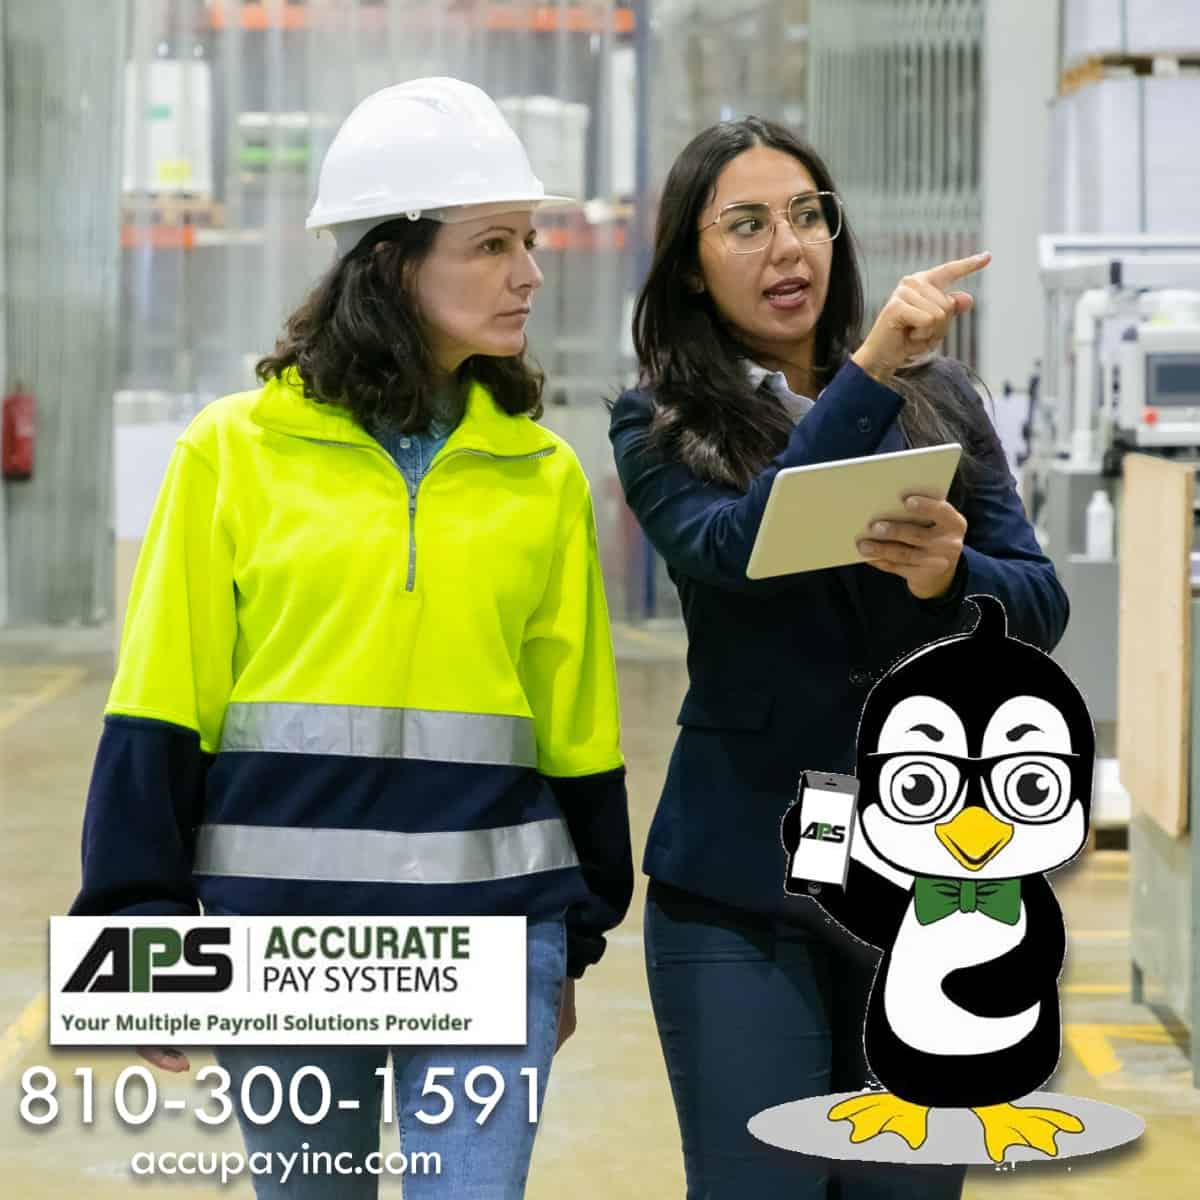 Key Practices to Keep the Workplace Safe from Accurate Pay Systems